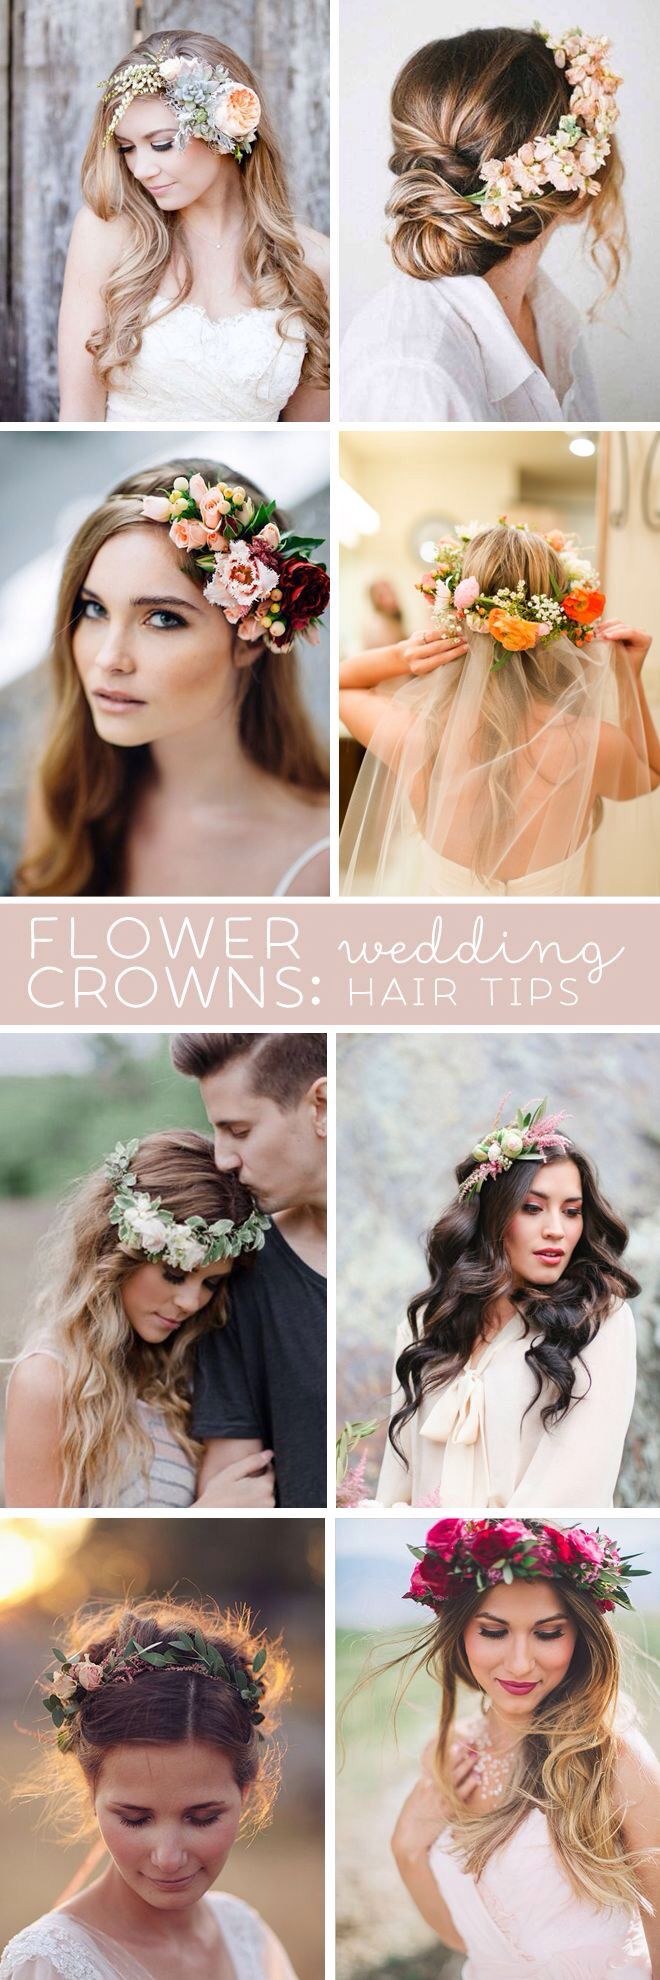 Boho hippie wedding vail #diy_flower_headpiece